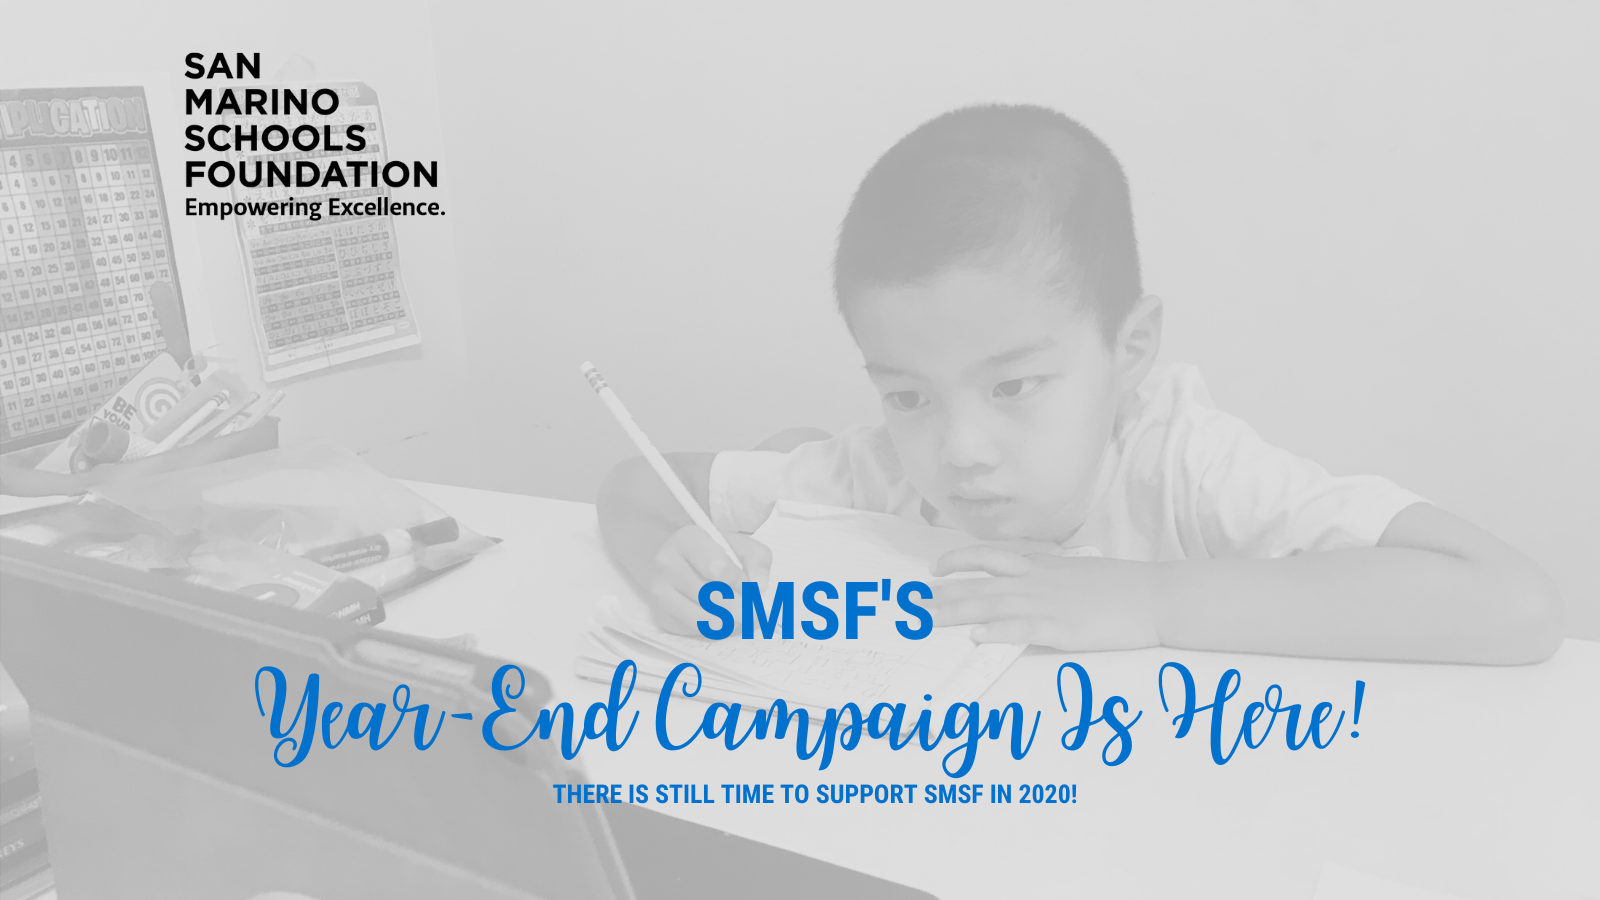 There is Still Time To Support SMSF in 2020!